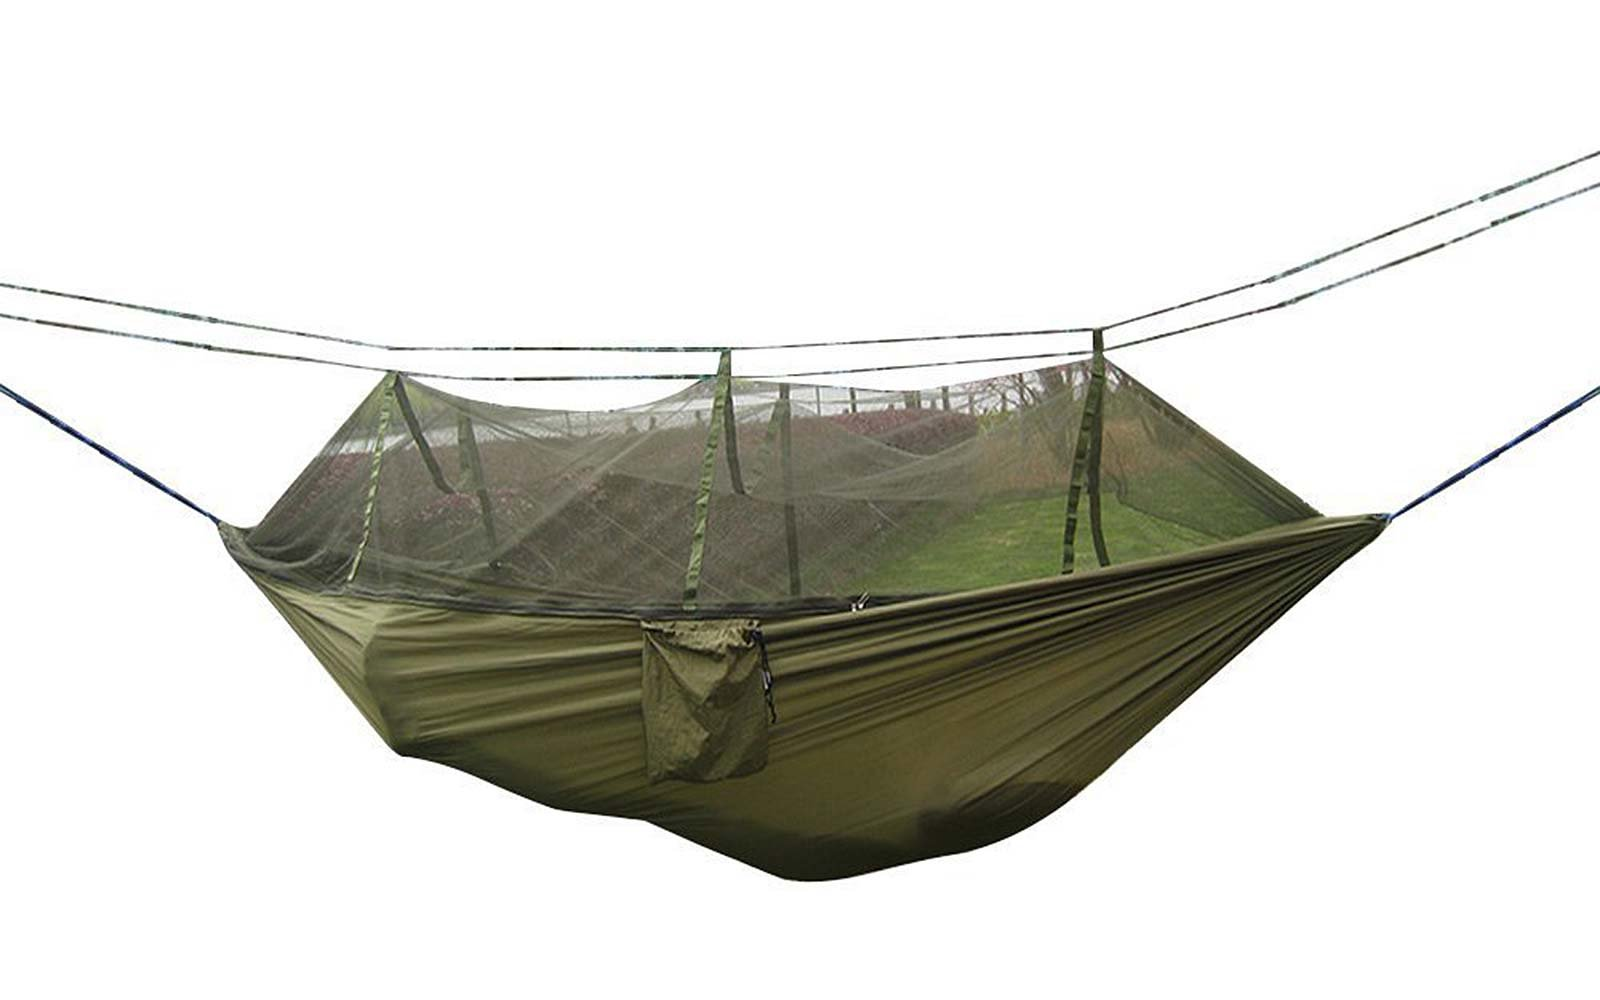 Rusee Camping Hammock Gift Guide Under $25